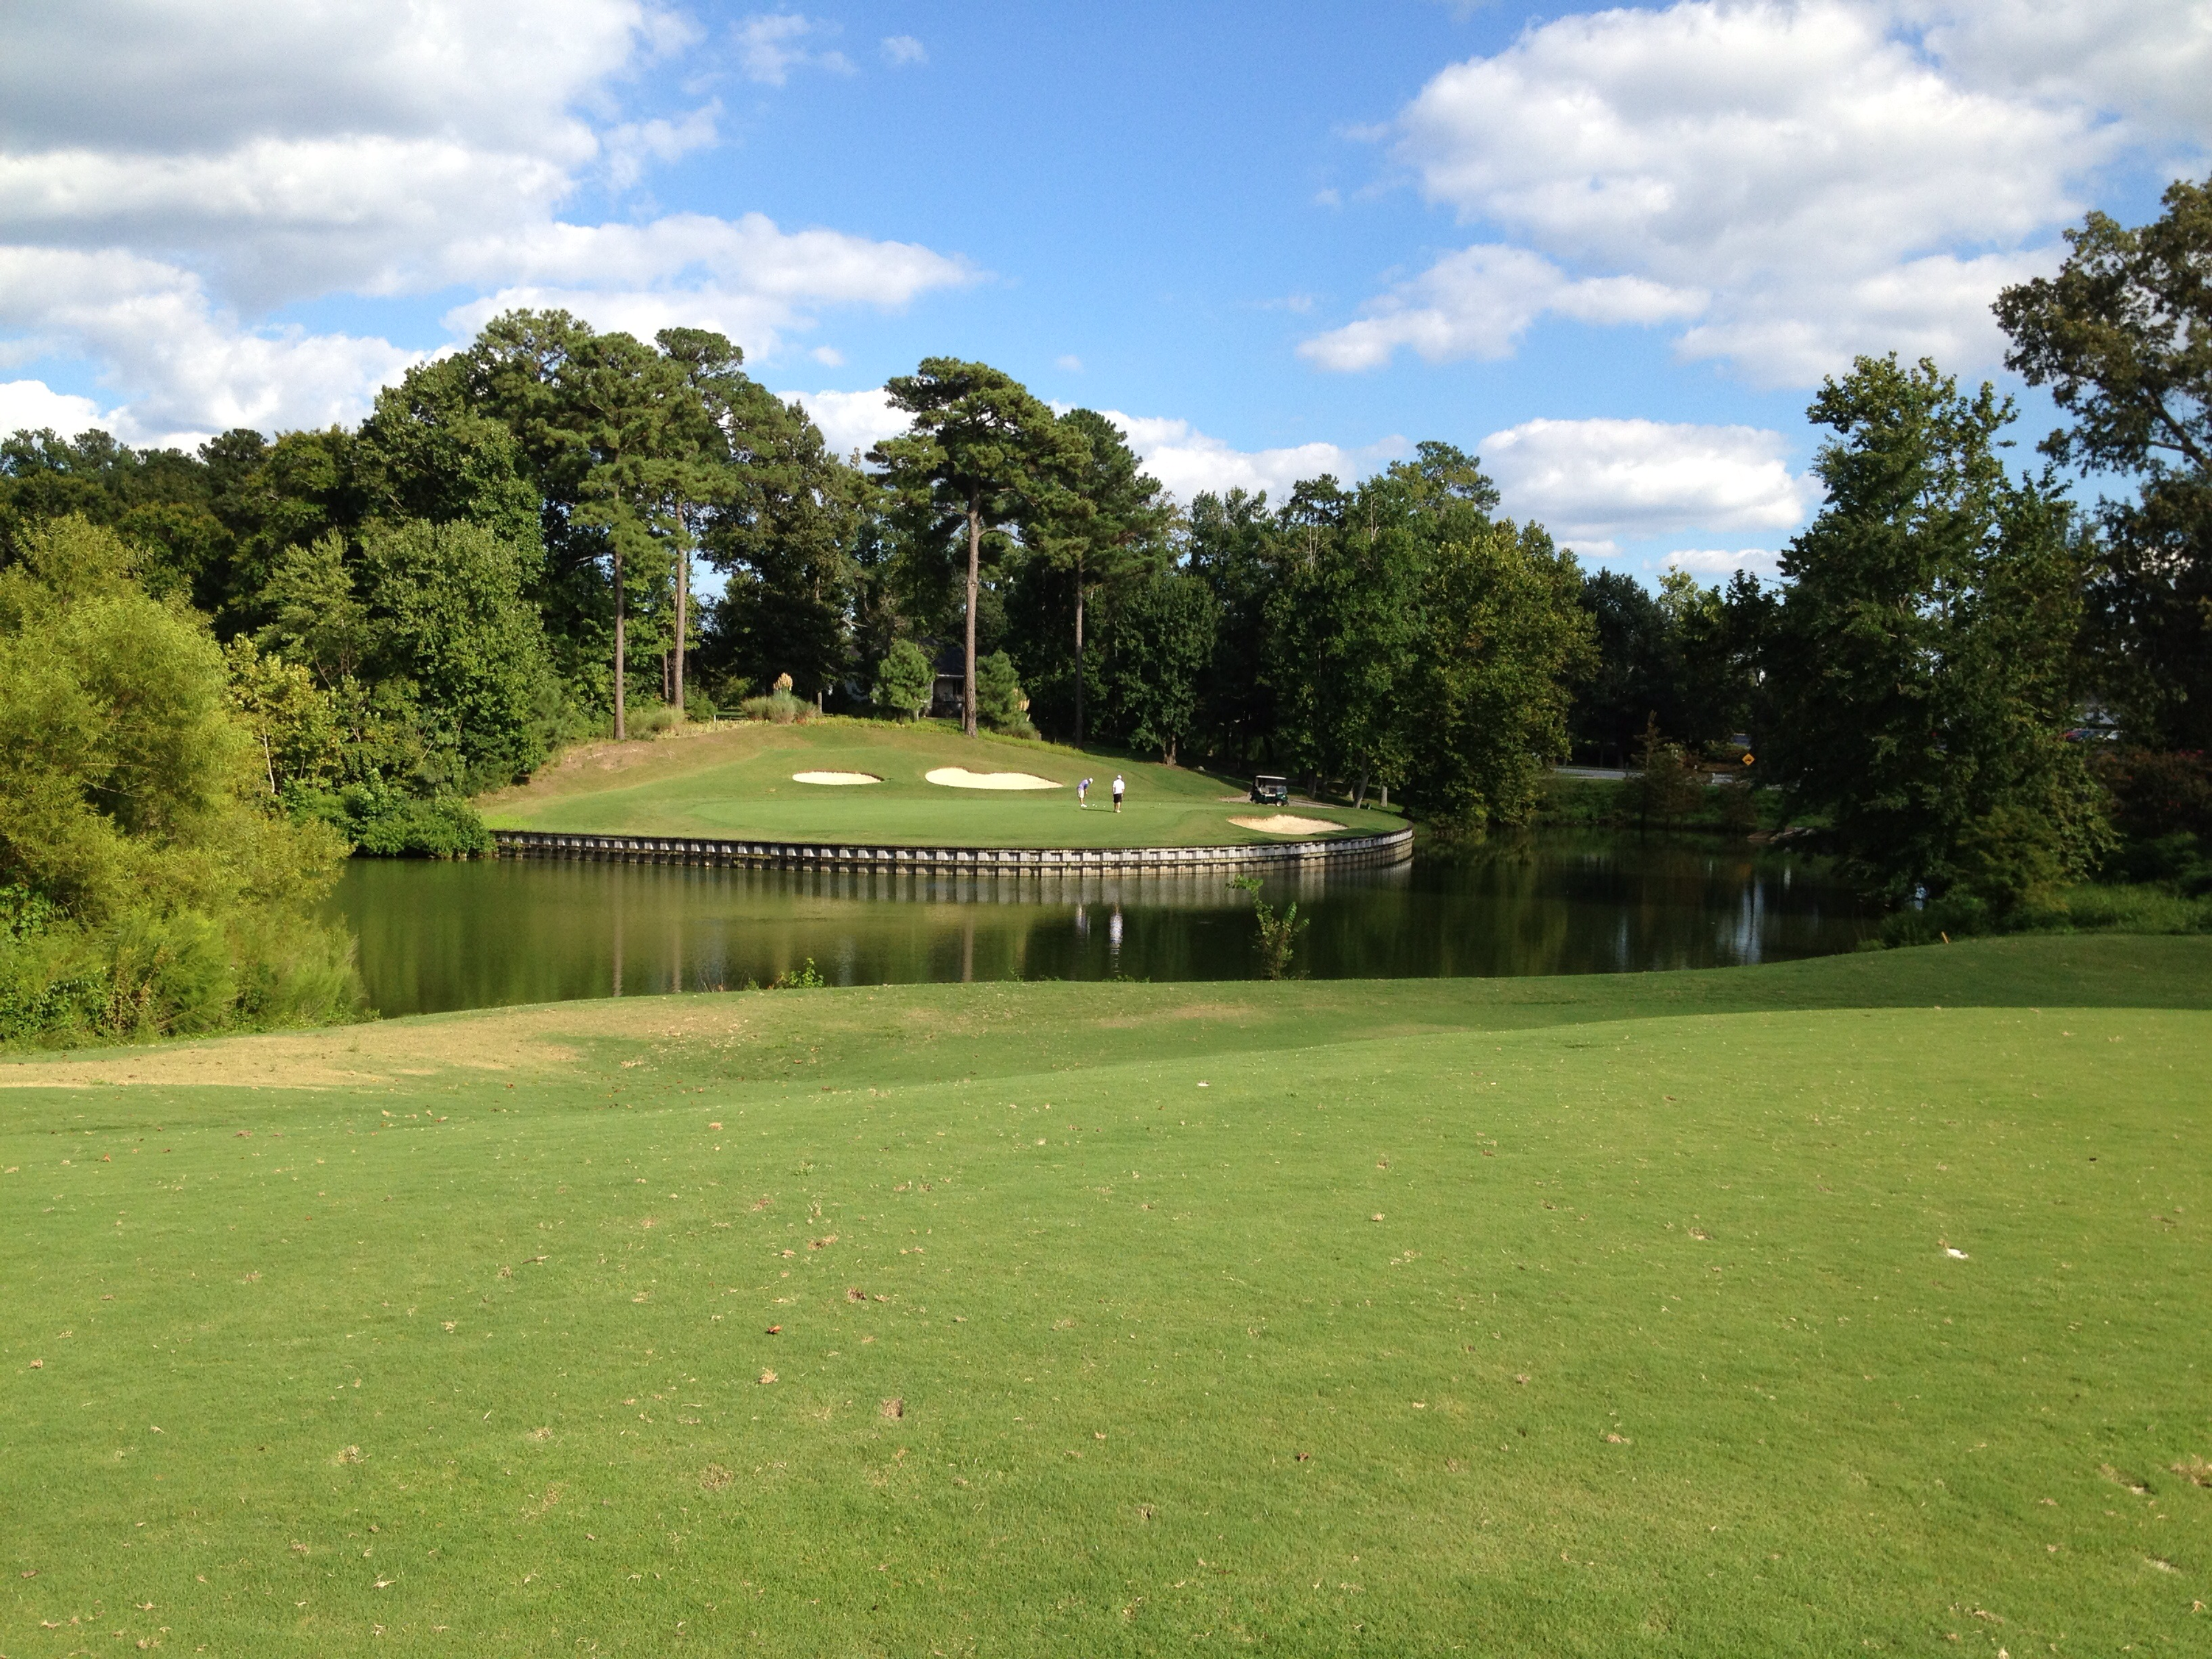 Cypress creek golfers club cover picture